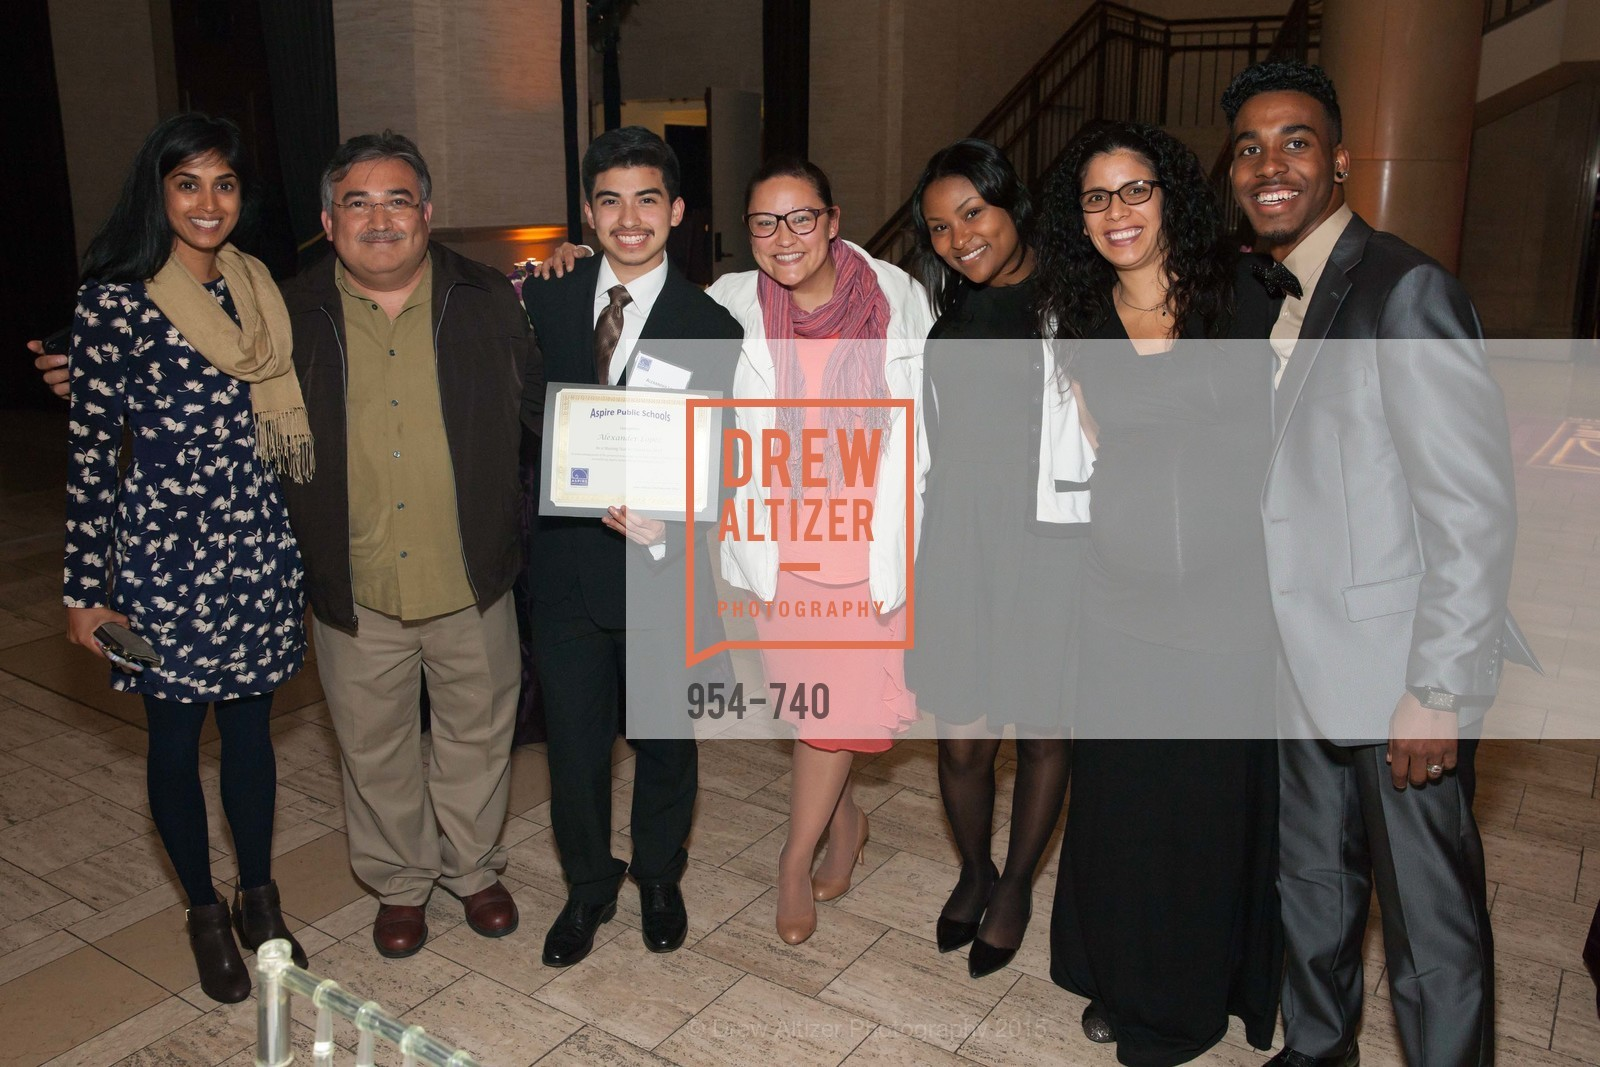 Minnie Setty, Alexander Lopez, Tatiana Lim, Arlena Ford, Sarah Salazar, Xavier Taylor, Aspire Annual College for Certain Dinne, US, May 20th, 2015,Drew Altizer, Drew Altizer Photography, full-service agency, private events, San Francisco photographer, photographer california